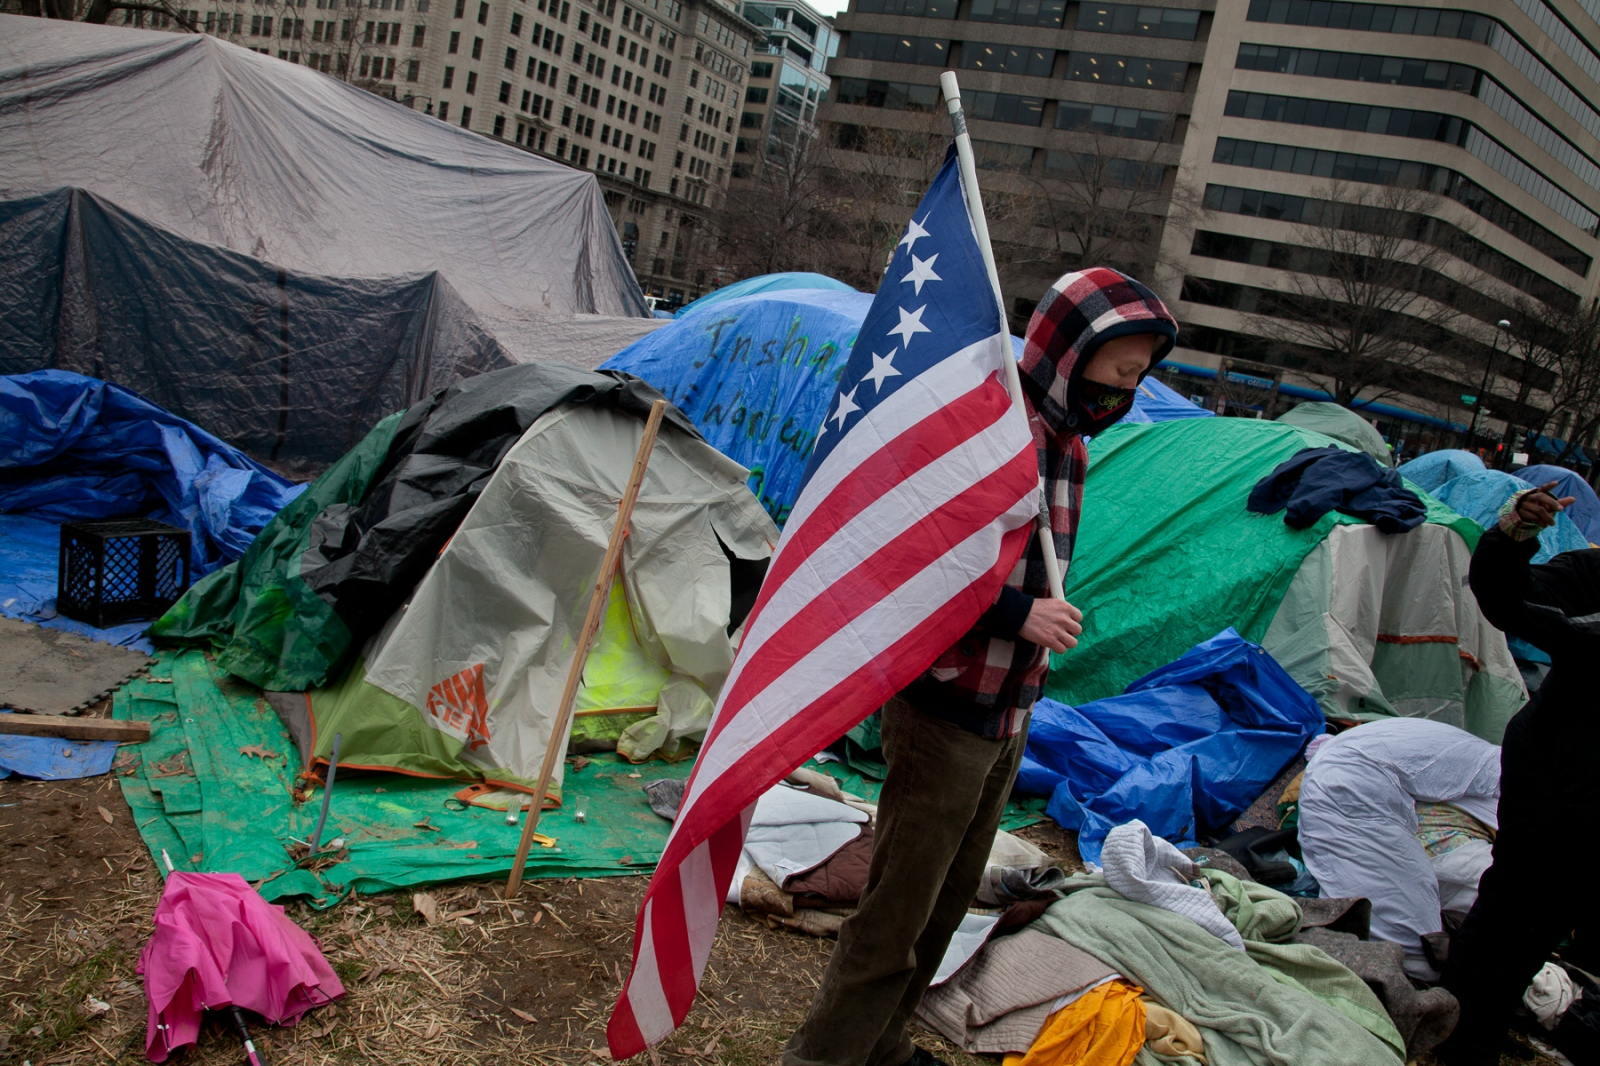 As the hours wore on, during the inspection, word spread that the US Park Police were removing tents that passed code. Violence erupted throughout the day as police continued to tear down tents and cart away bedding and protestors' belongings, some with trash and dead rats.